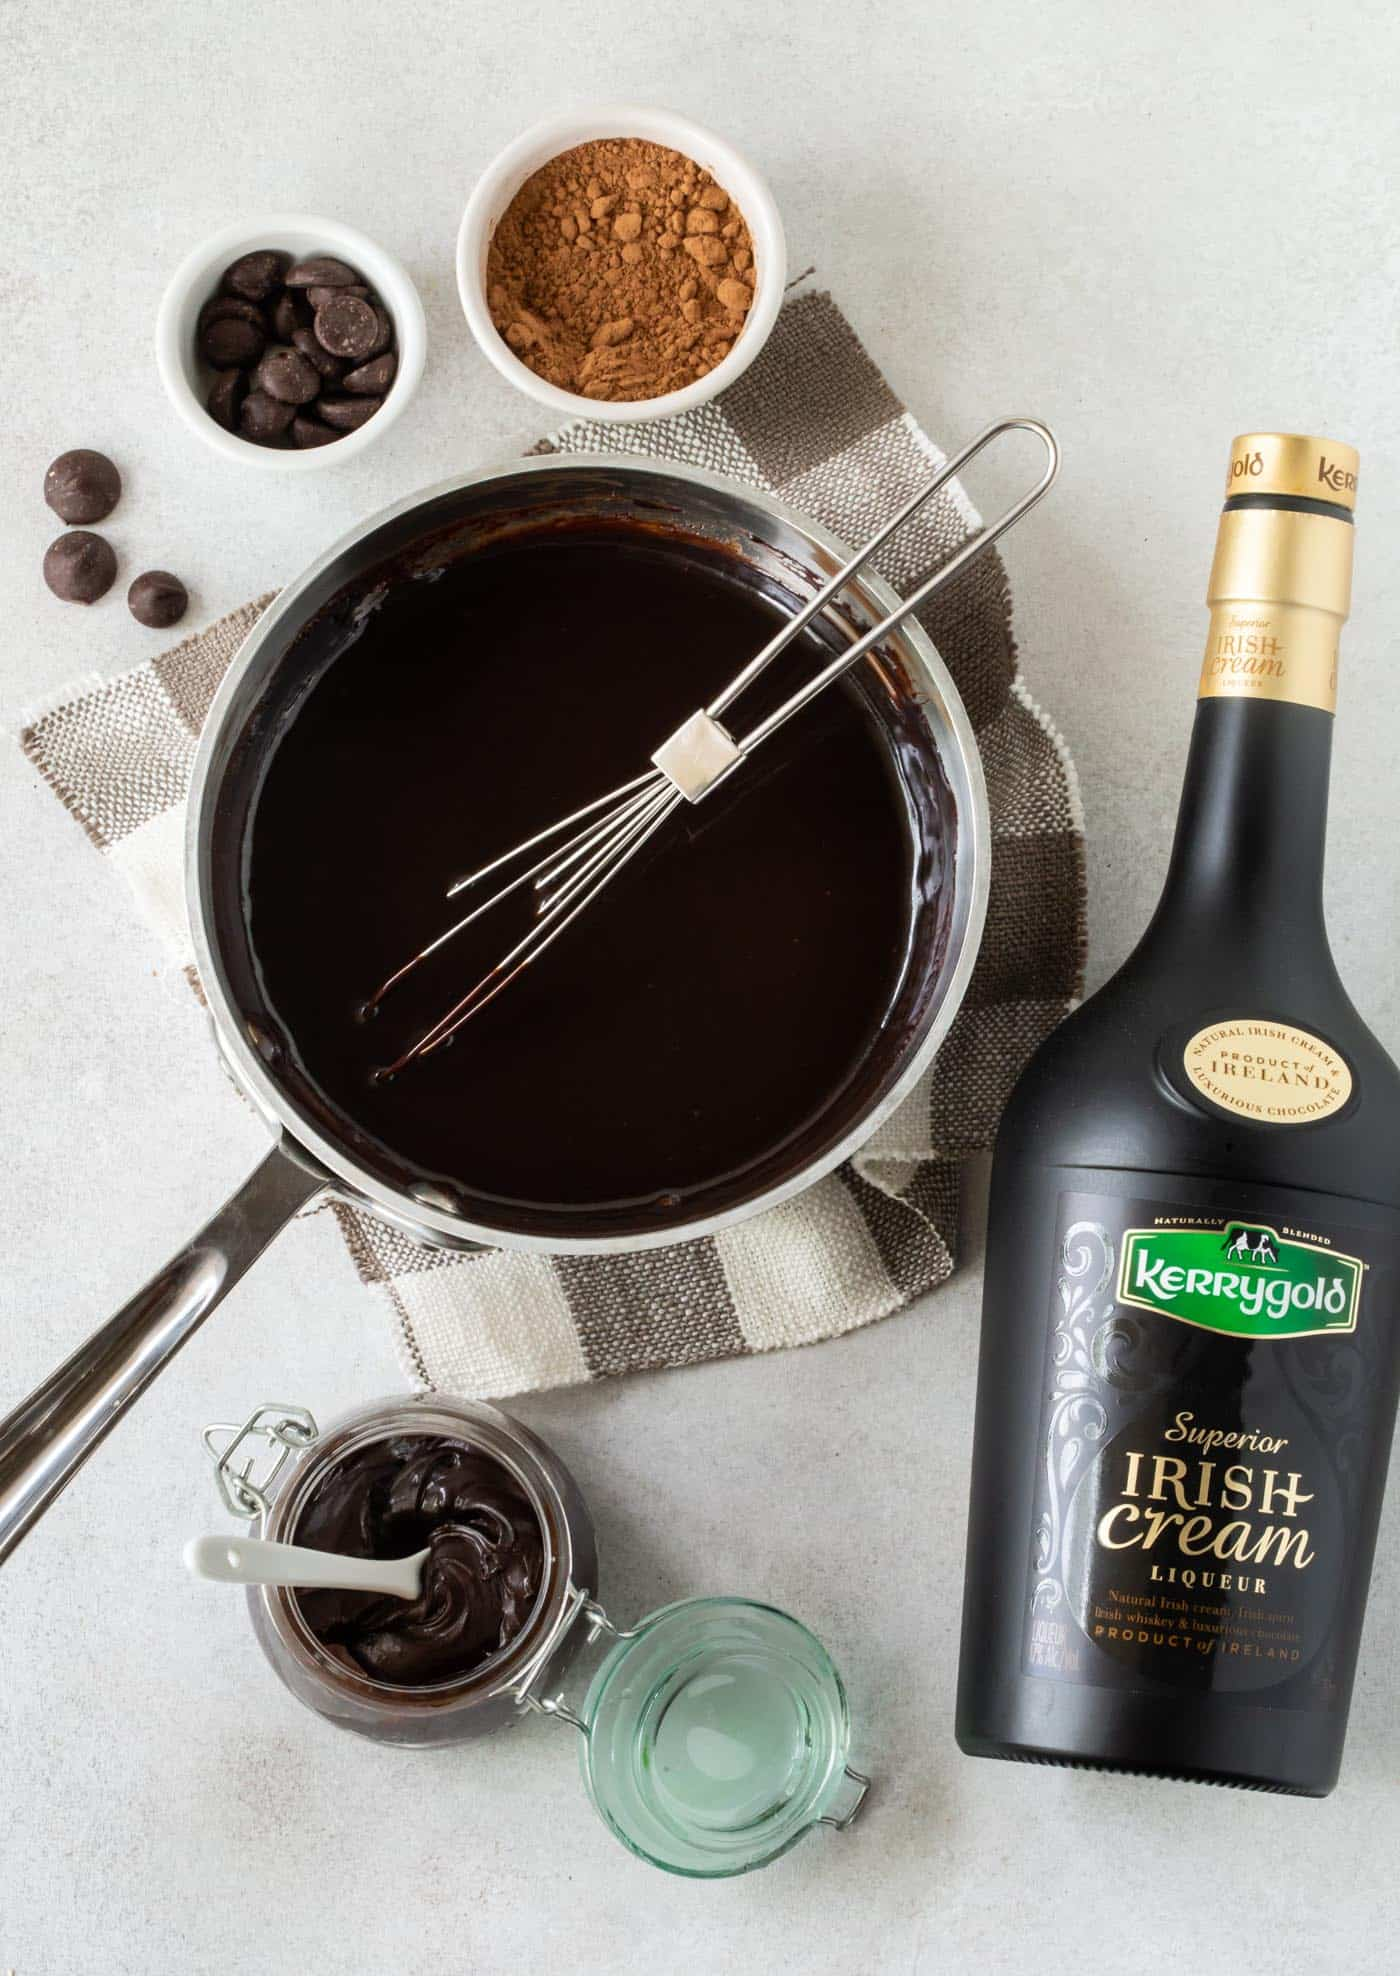 Irish Cream Hot Fudge Sauce Recipe: Sauce pan filled with irish cream hot fudge sauce. Surrounded by fudge sauce ingredients, including cocoa powder, chocolate chips and a bottle of Kerrygold Irish Cream Liqueur.